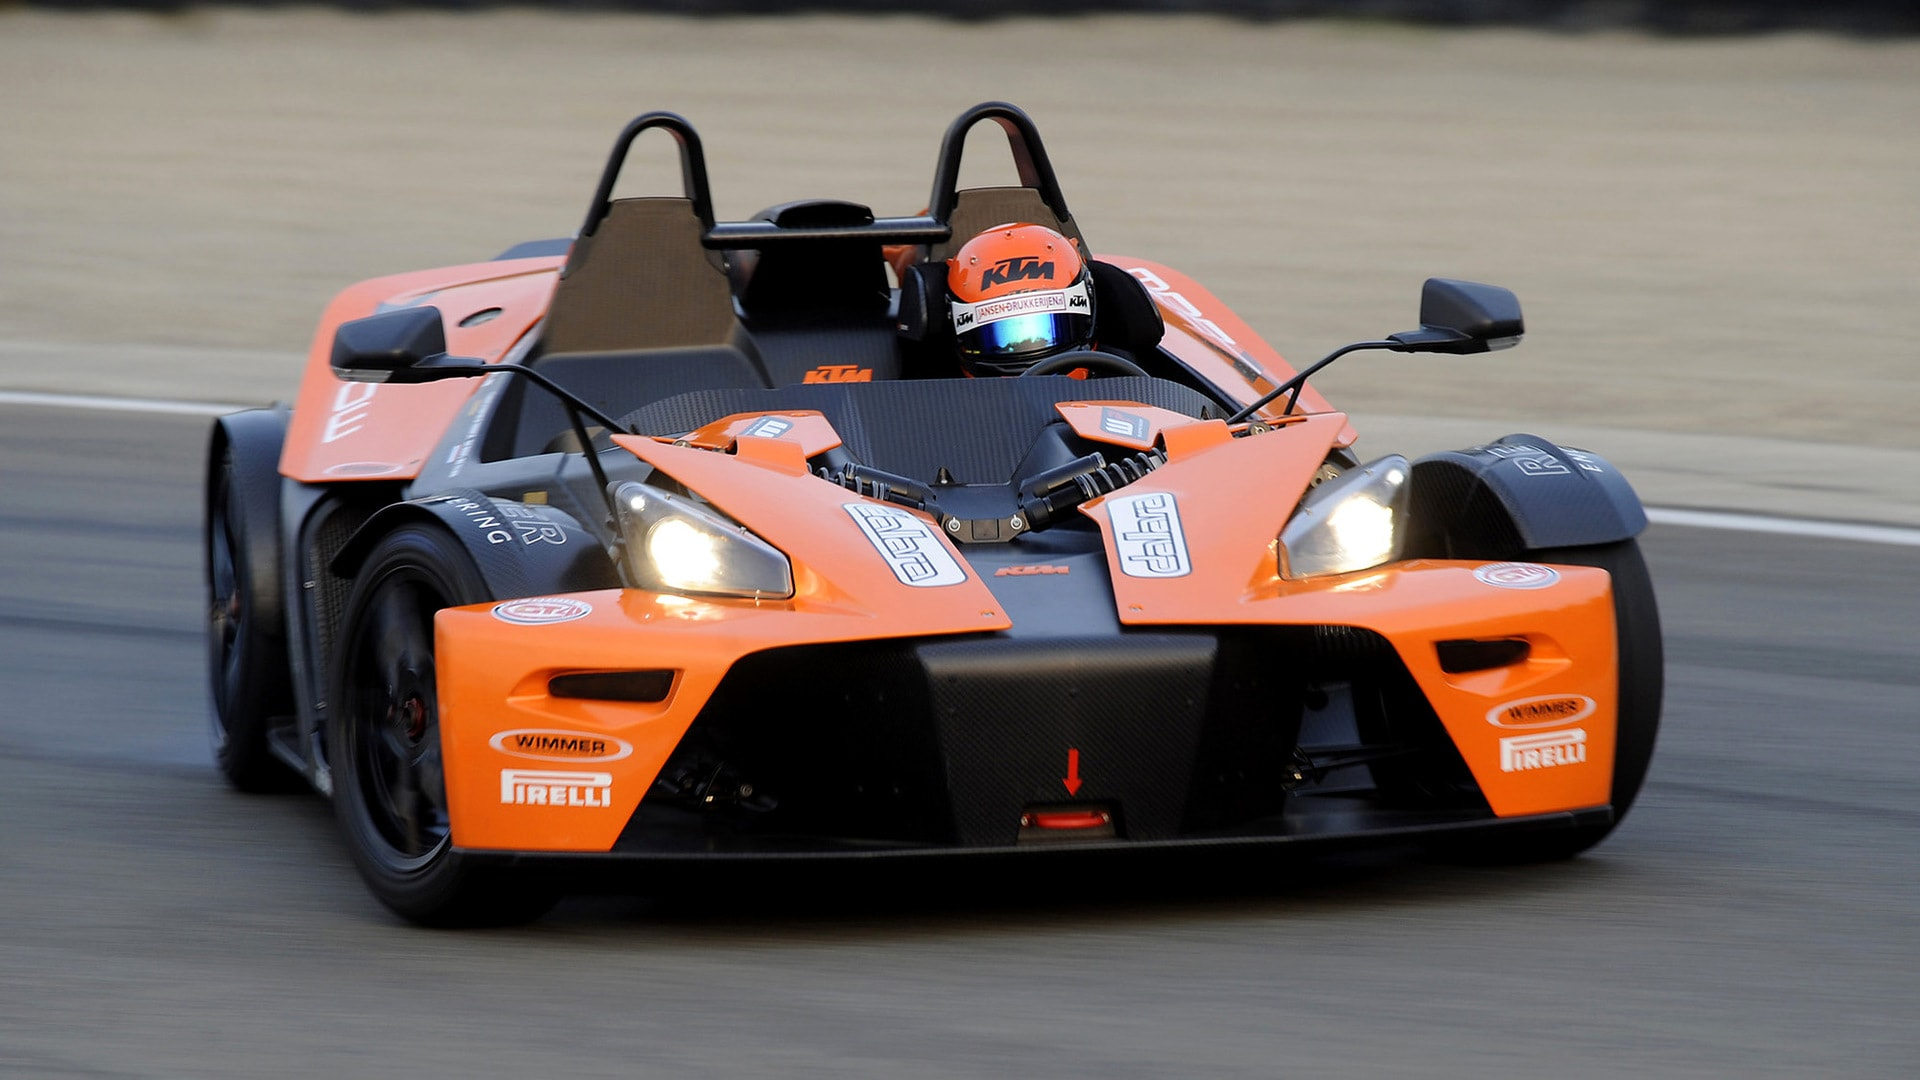 KTM X-Bow Widescreen for desktop